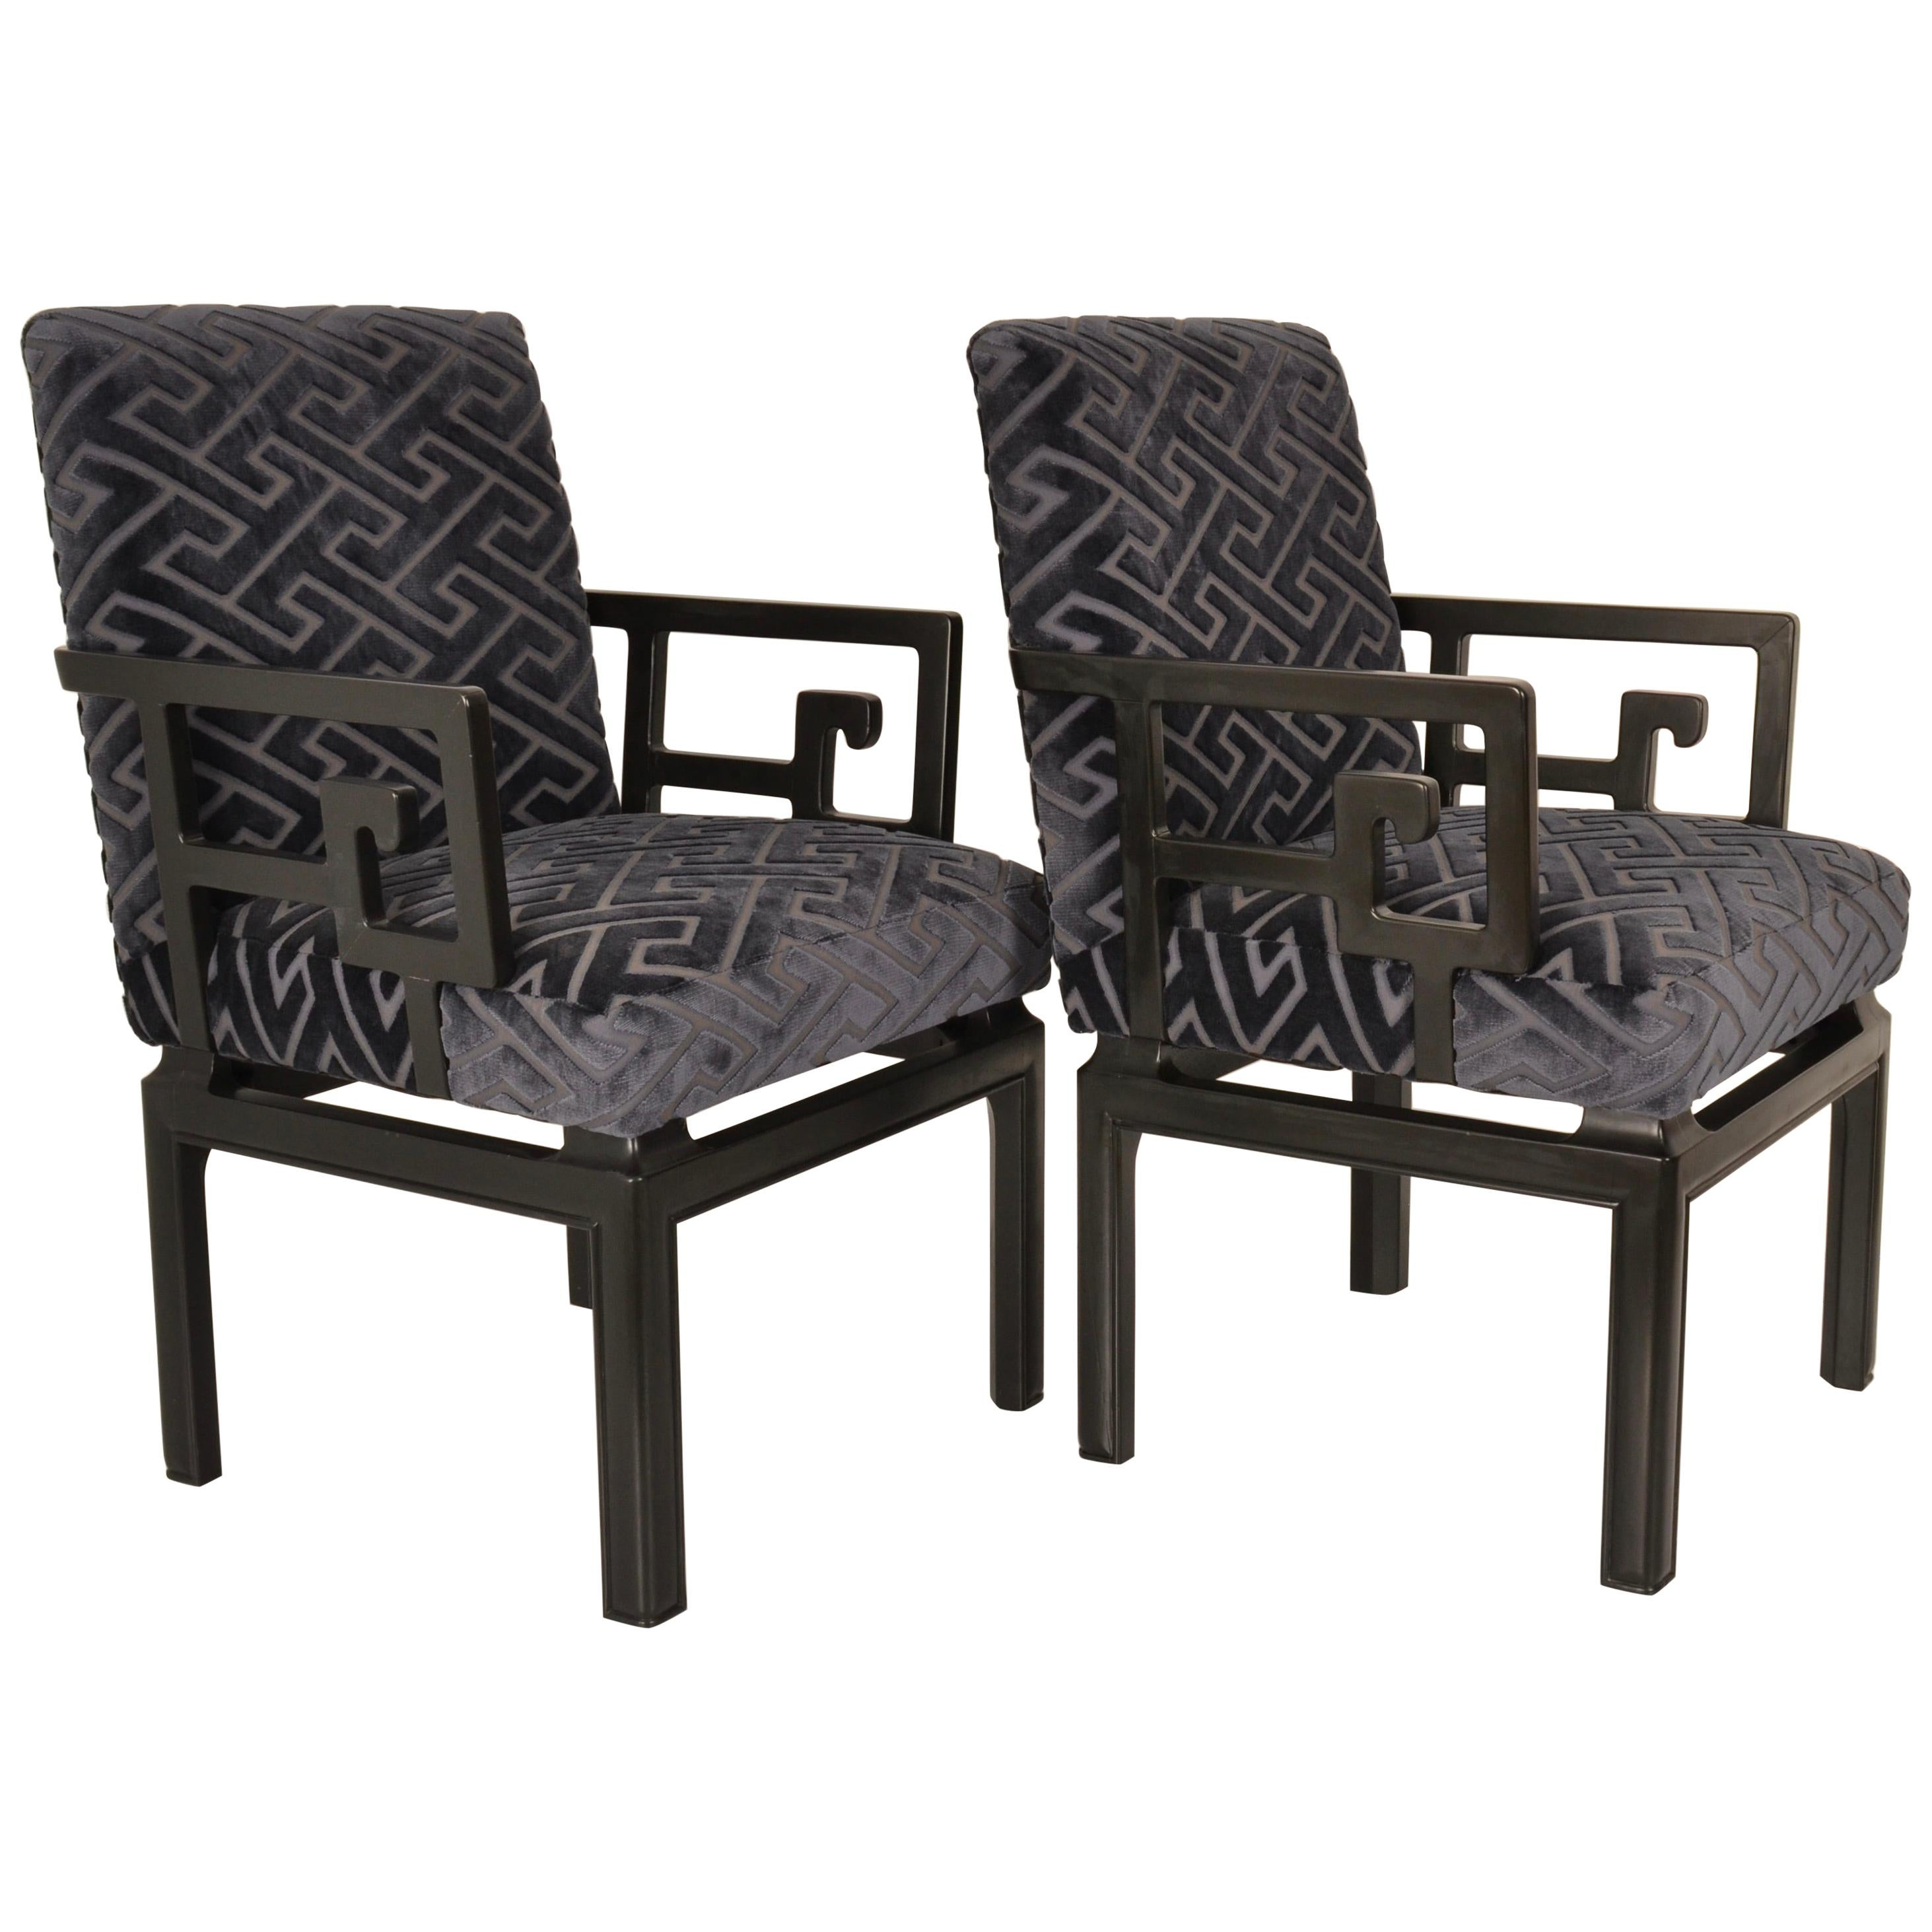 Pair of Armchairs by Michael Taylor for Baker Far East Collection